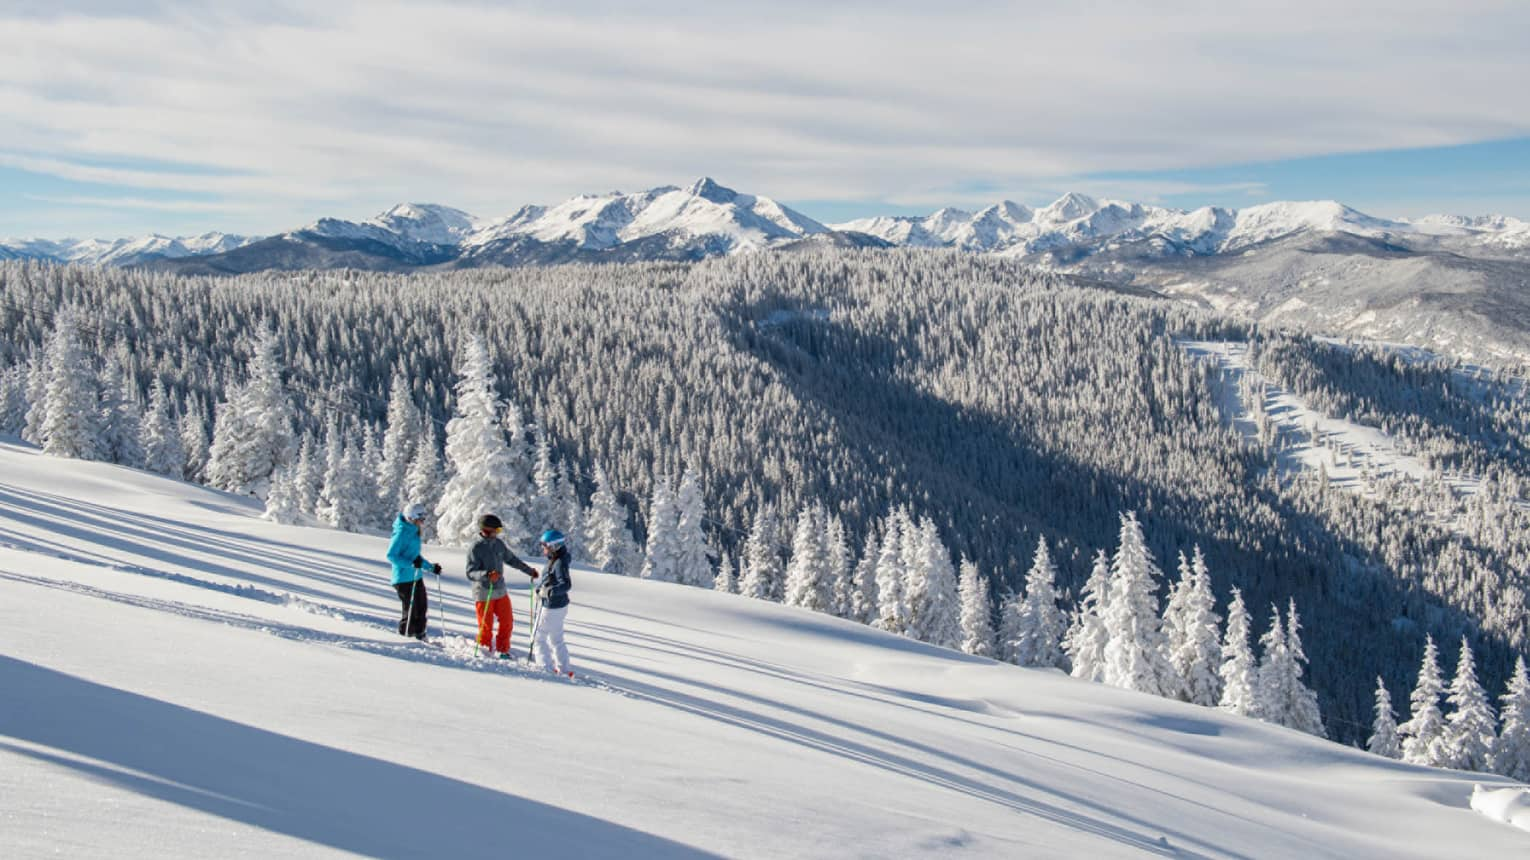 Three guests on skis pause on the ski hill, snow capped trees and mountains in distance